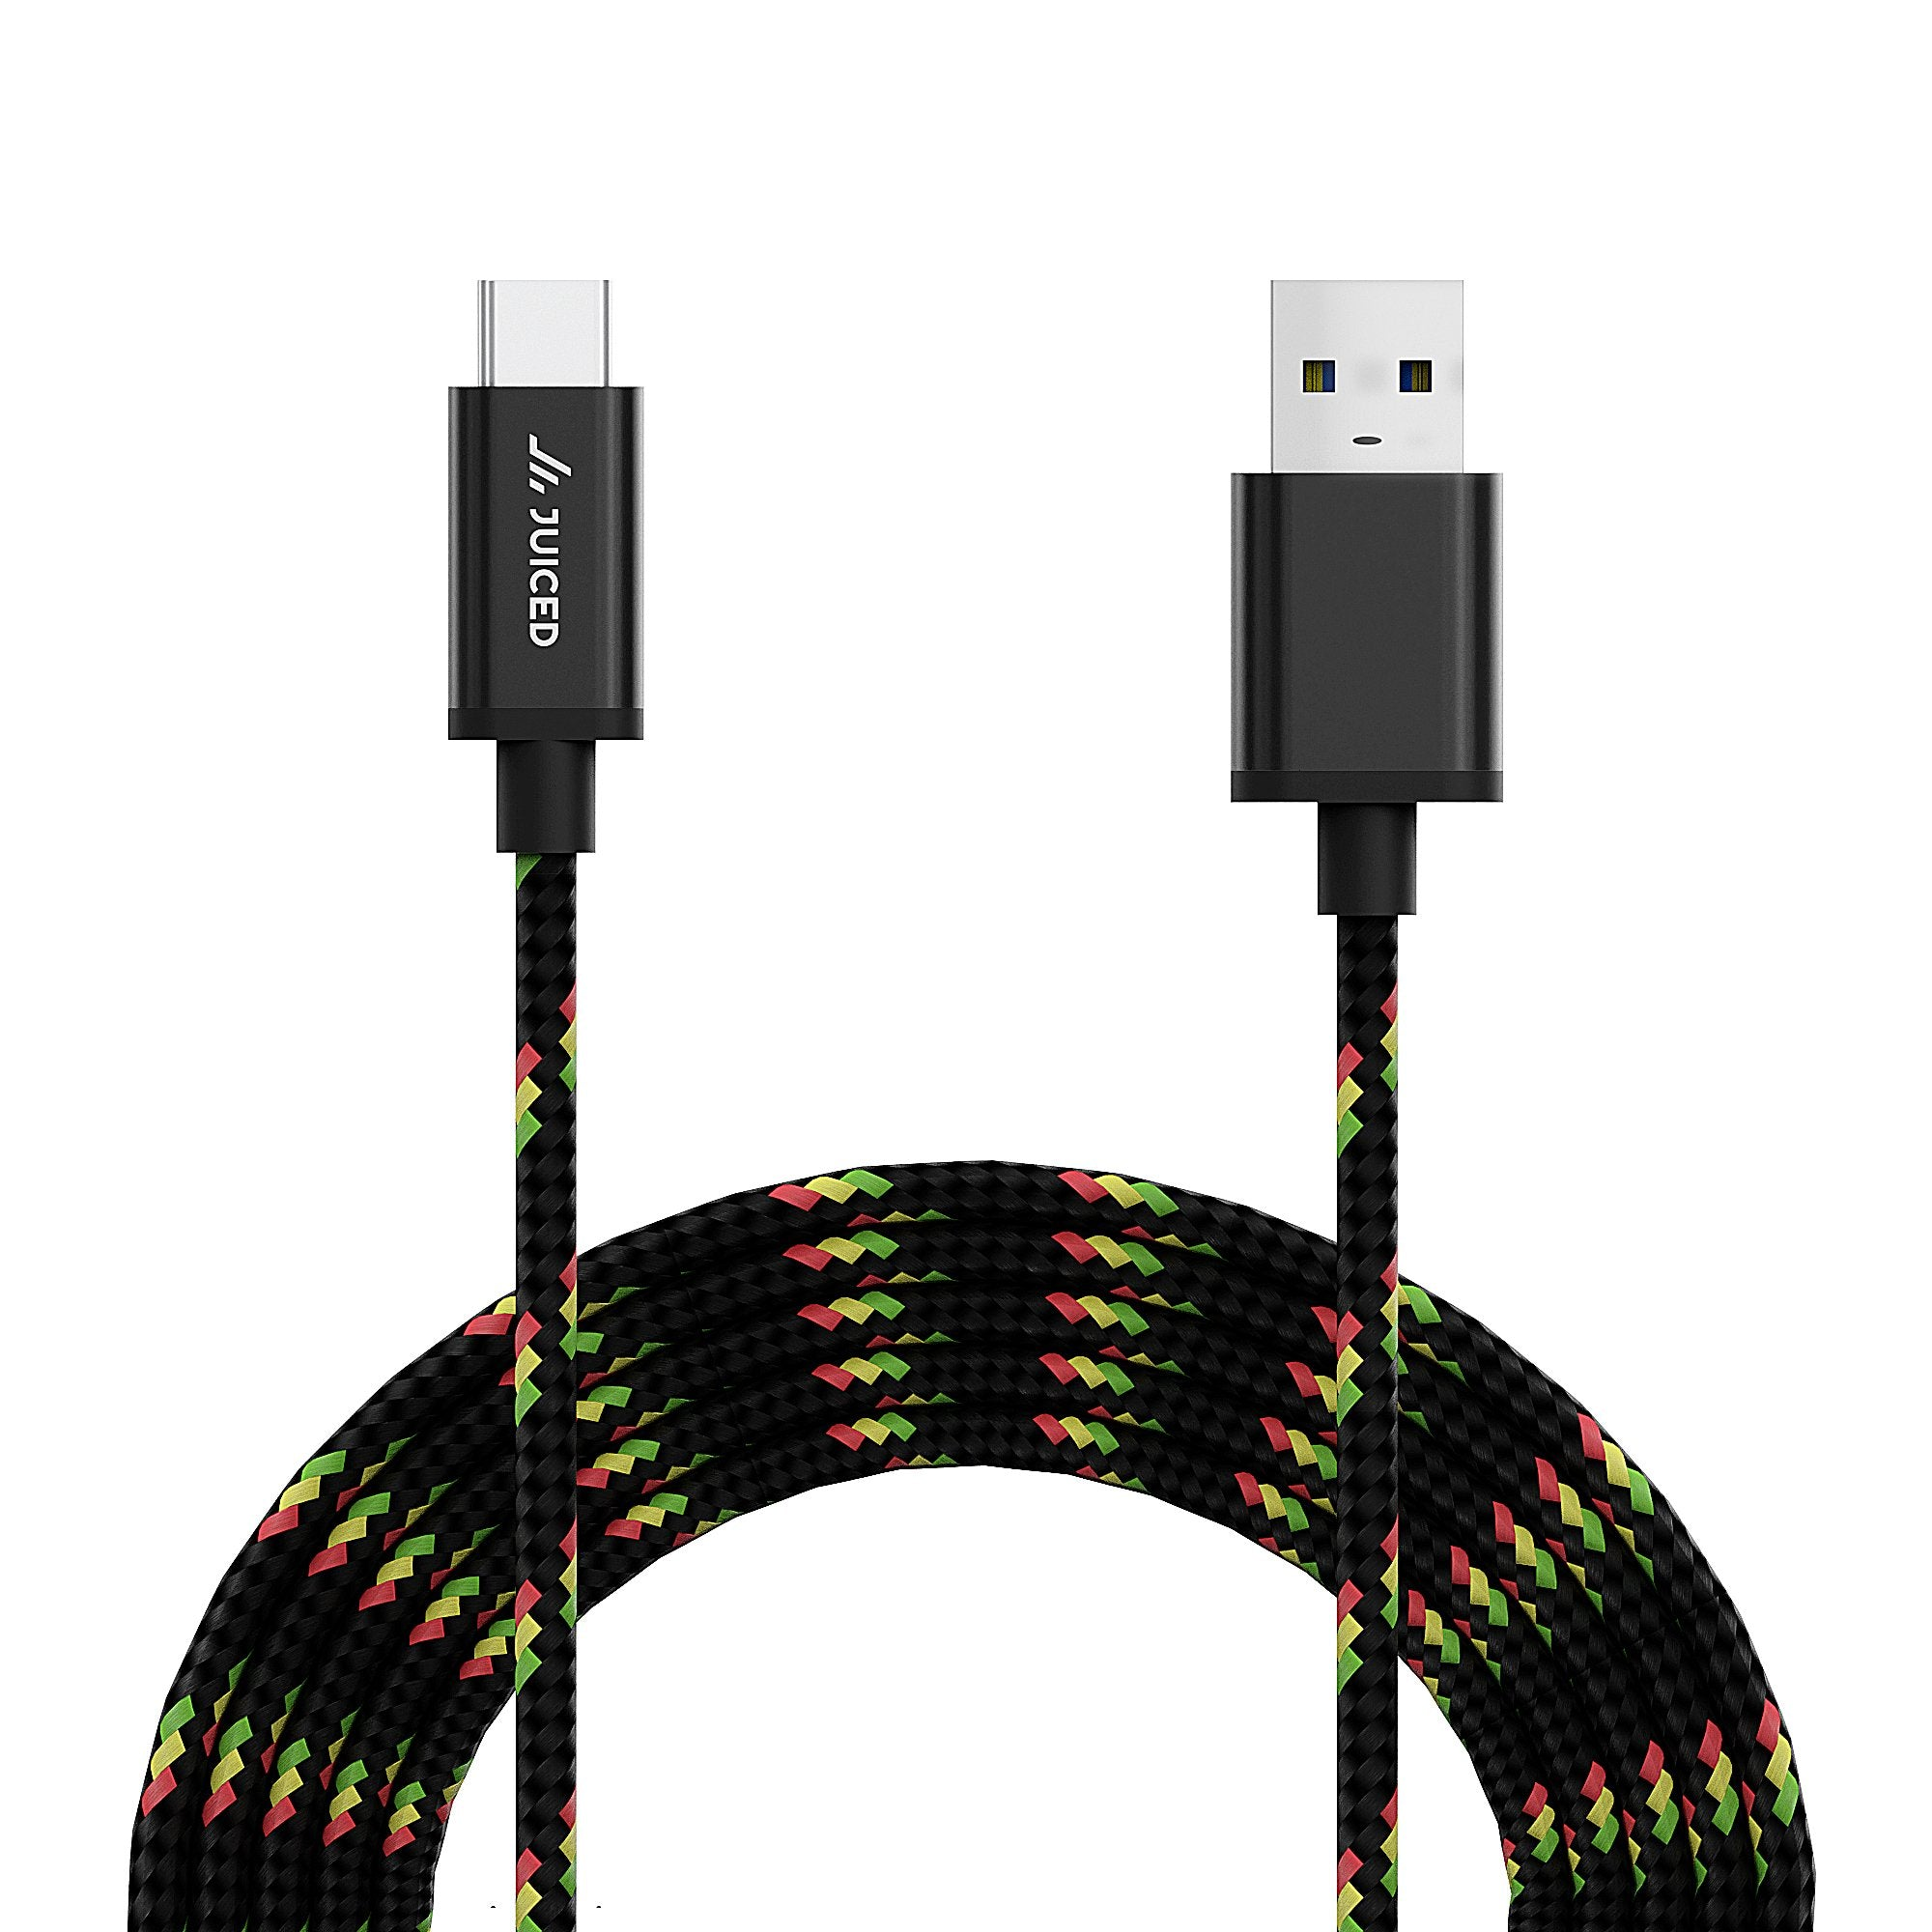 USB-A to USB-C RiseUp Cable  USB 3.2 Gen 2 - Juiced Systems